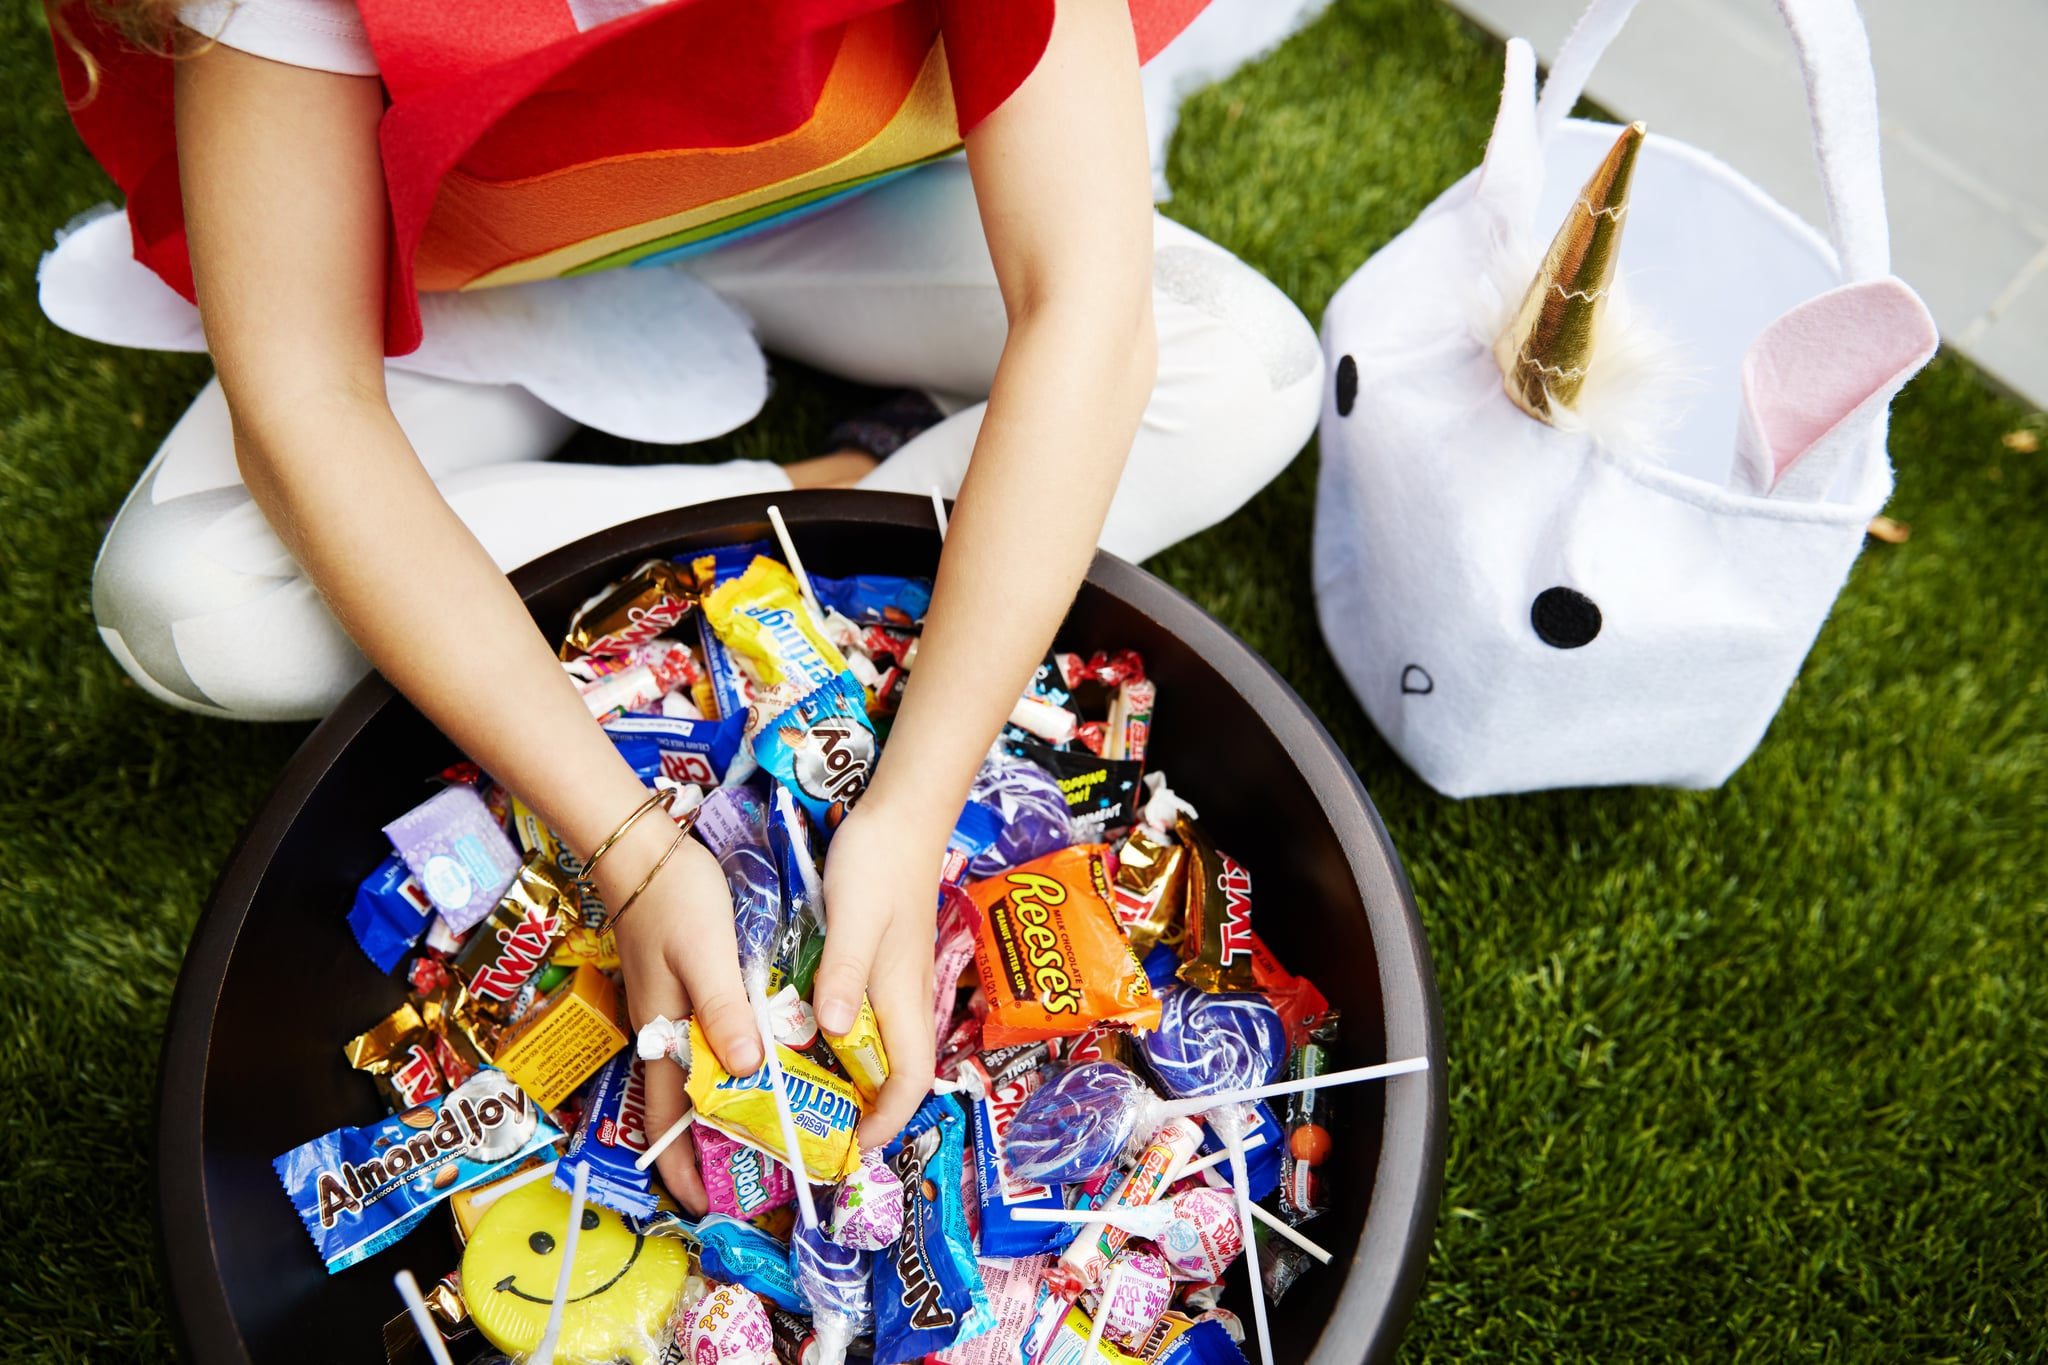 PopsugarMomsHalloweenPeanut-Free Halloween Candy For Kids With AllergiesThese Popular Halloween Candies Are Peanut-Free For Kids With AllergiesOctober 8, 2017 by Alessia Santoro371 SharesChat with us on Facebook Messenger. Learn what's trending across POPSUGAR.In the last decade or so, it seems as though the number of children with peanut allergies has skyrocketed, leading to schools banning popular lunch items like peanut butter and causing an increase for general concern, especially around Halloween, when the chance of a child with an allergy consuming a piece of candy with peanuts in it is high.Because the holiday can be so treacherous for a child with allergies and their parents, initiatives like the Teal Pumpkin Project — a campaign raising awareness for food allergies by encouraging homes to put out a teal pumpkin to alert trick-or-treaters to the fact that they have nonfood treats to give out on Halloween — are trying to create safer, happier environments for kids with allergies.Related:A Mother's - 웹